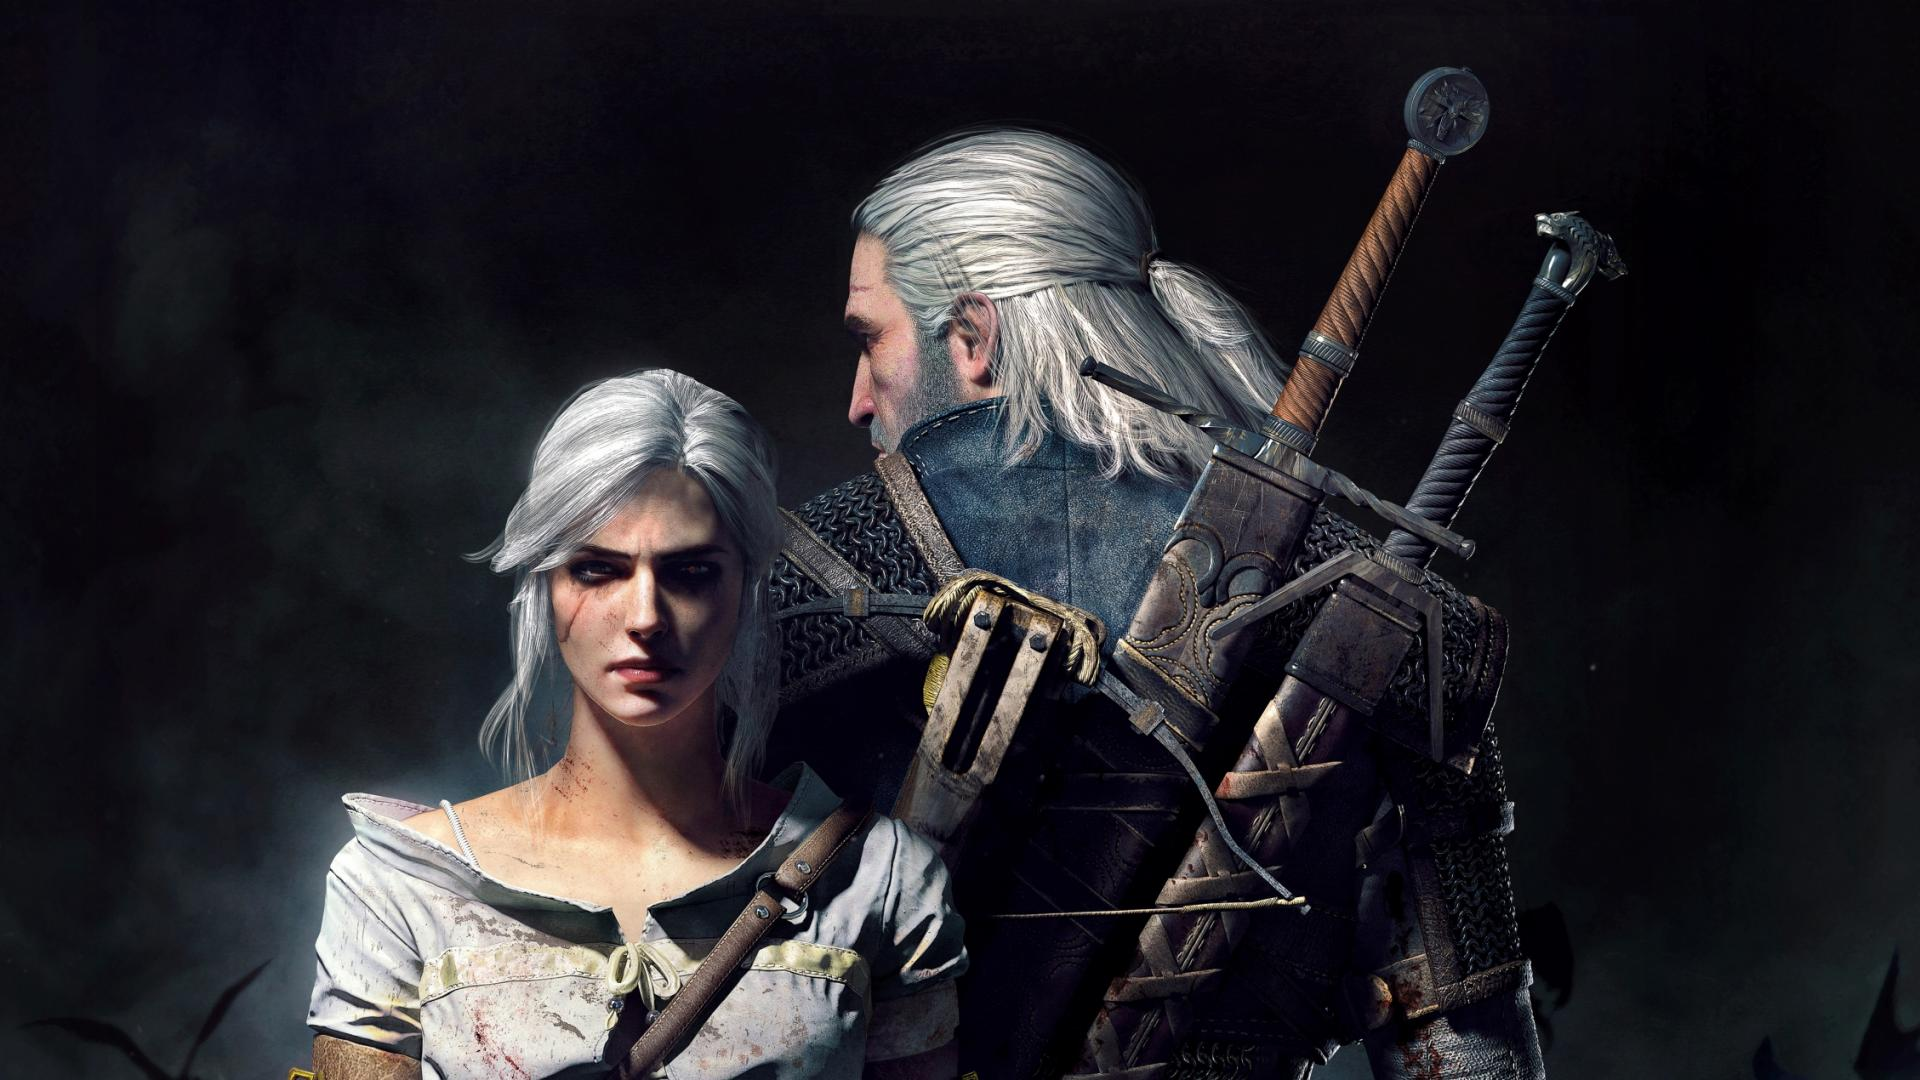 Comienzan los castings de la serie de The Witcher